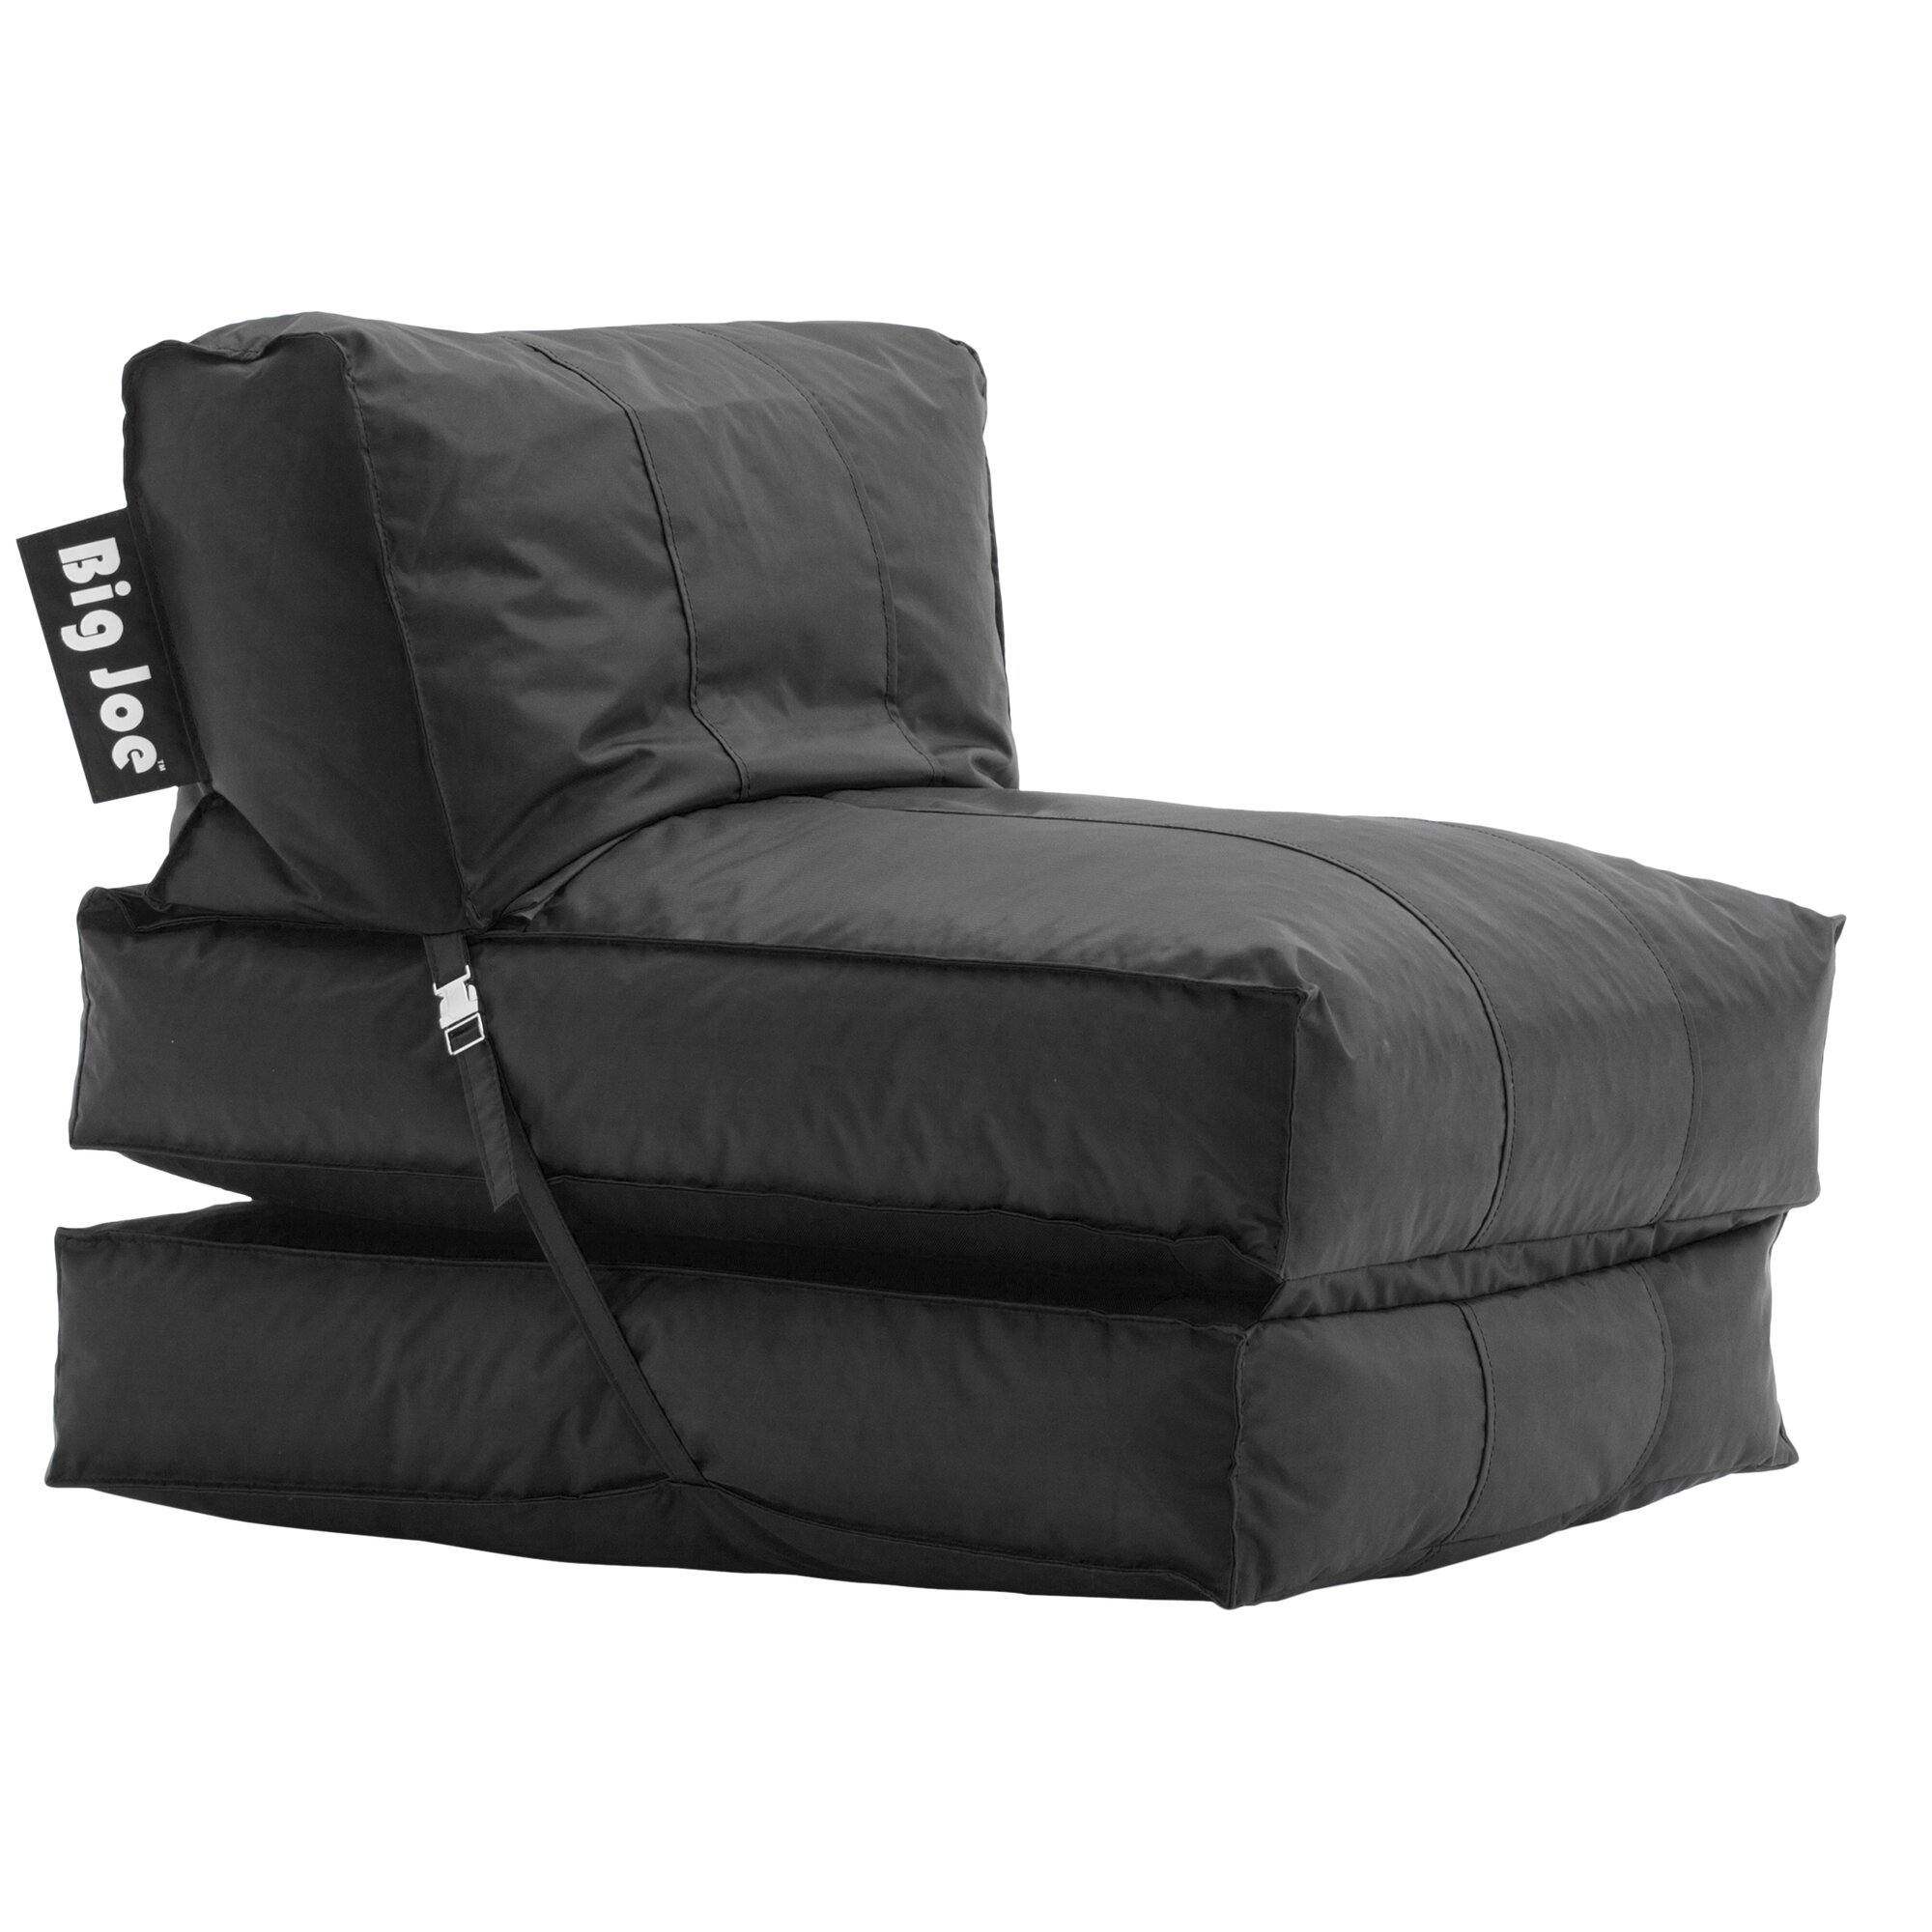 Comfort Research Big Joe Bean Bag Lounger Amp Reviews Wayfair